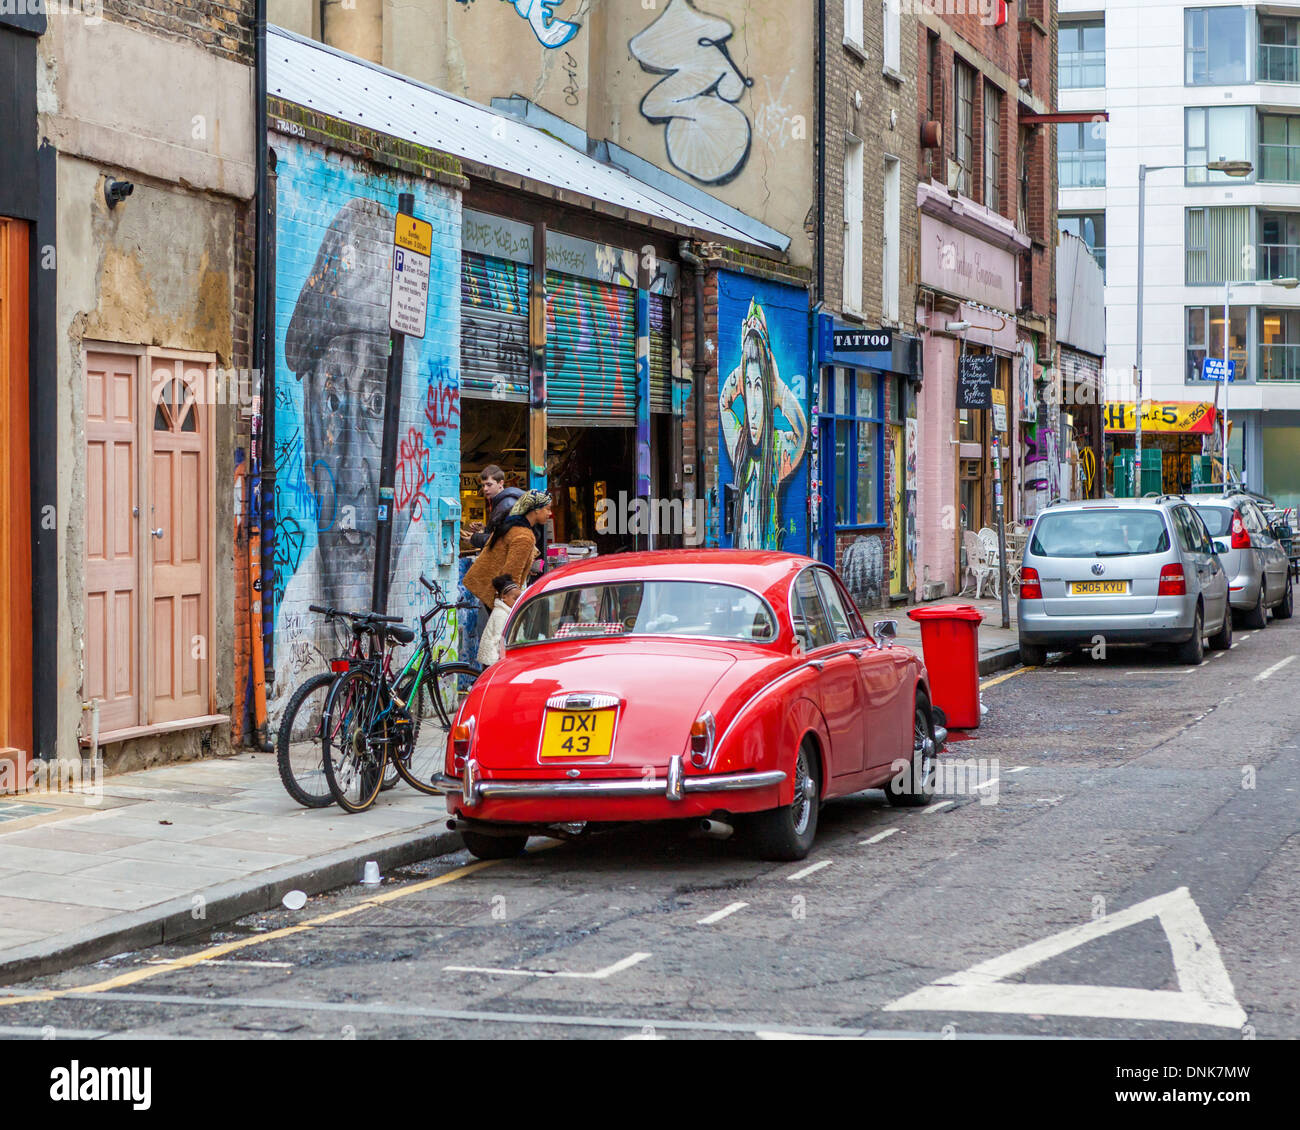 parked classic red car charlie burns street art and secondhand furniture shops in bacon street off brick lane east london uk